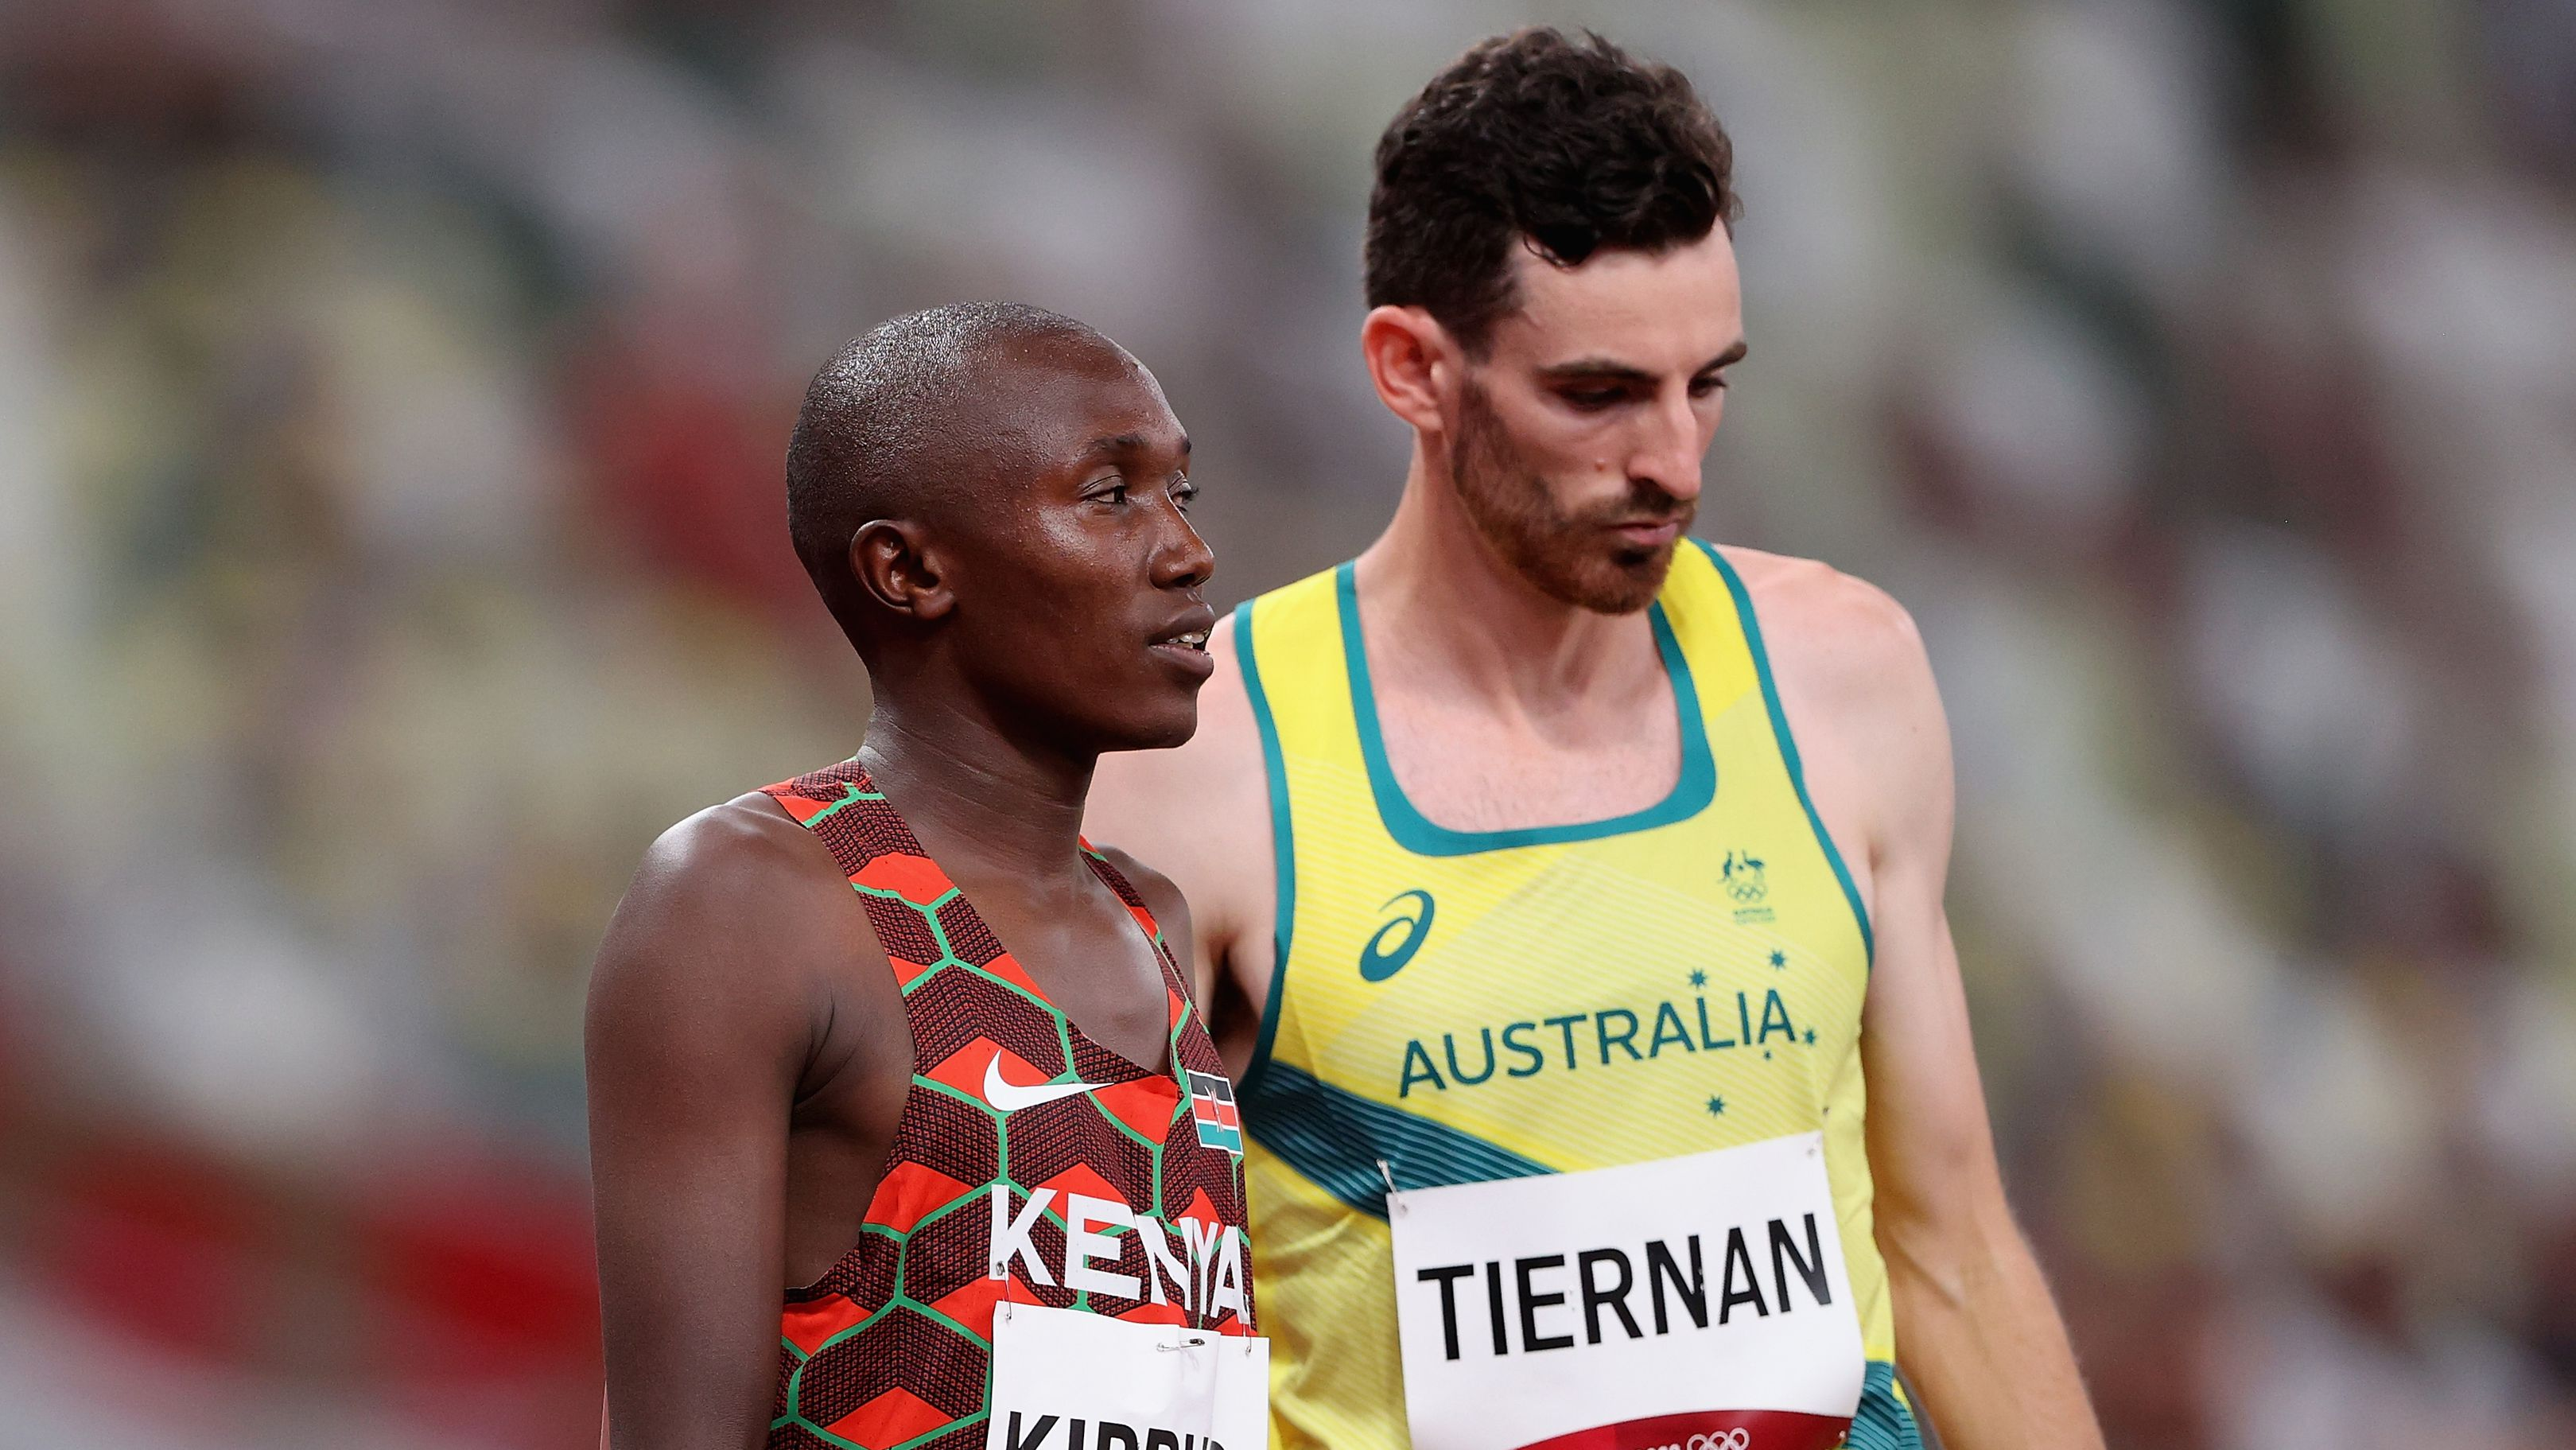 Aussie speaks out after 'heroic' Olympic finish